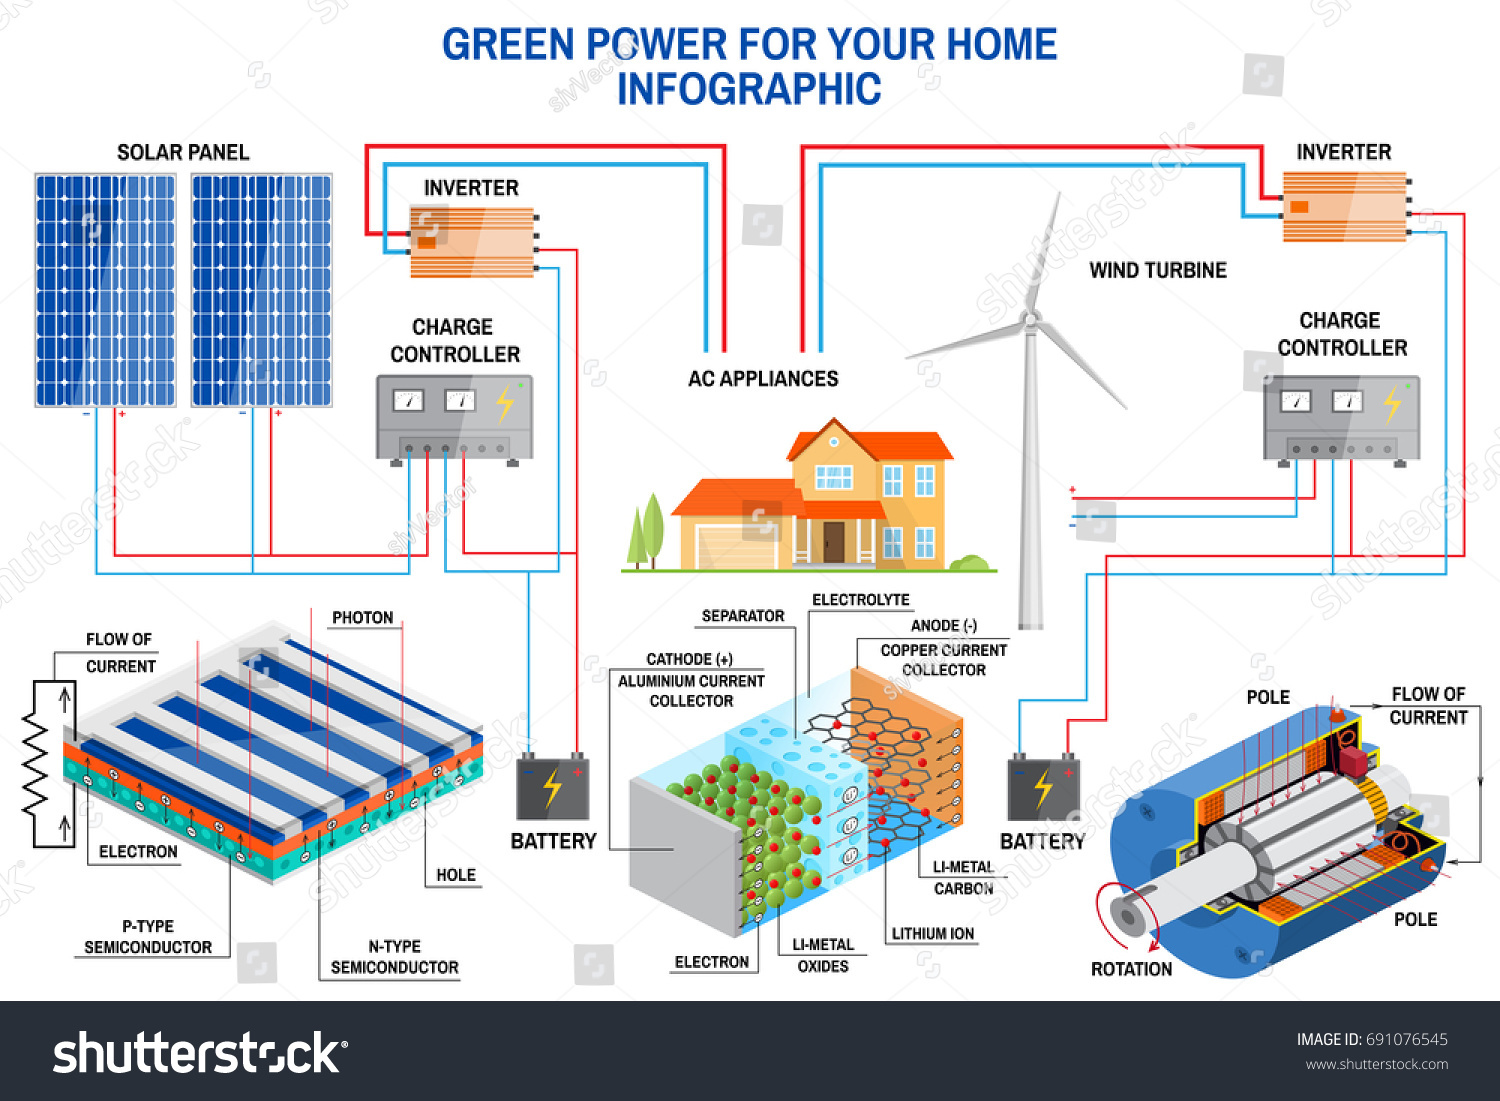 Amazing Bulldog Car Wiring Diagrams Huge Super Switch Wiring Round Dimarzio Ep1112 Ibanez Humbuckers Old Security Wires White3 Wire Humbucker Solar Panel Wind Power Generation System Stock Vector 691076545 ..